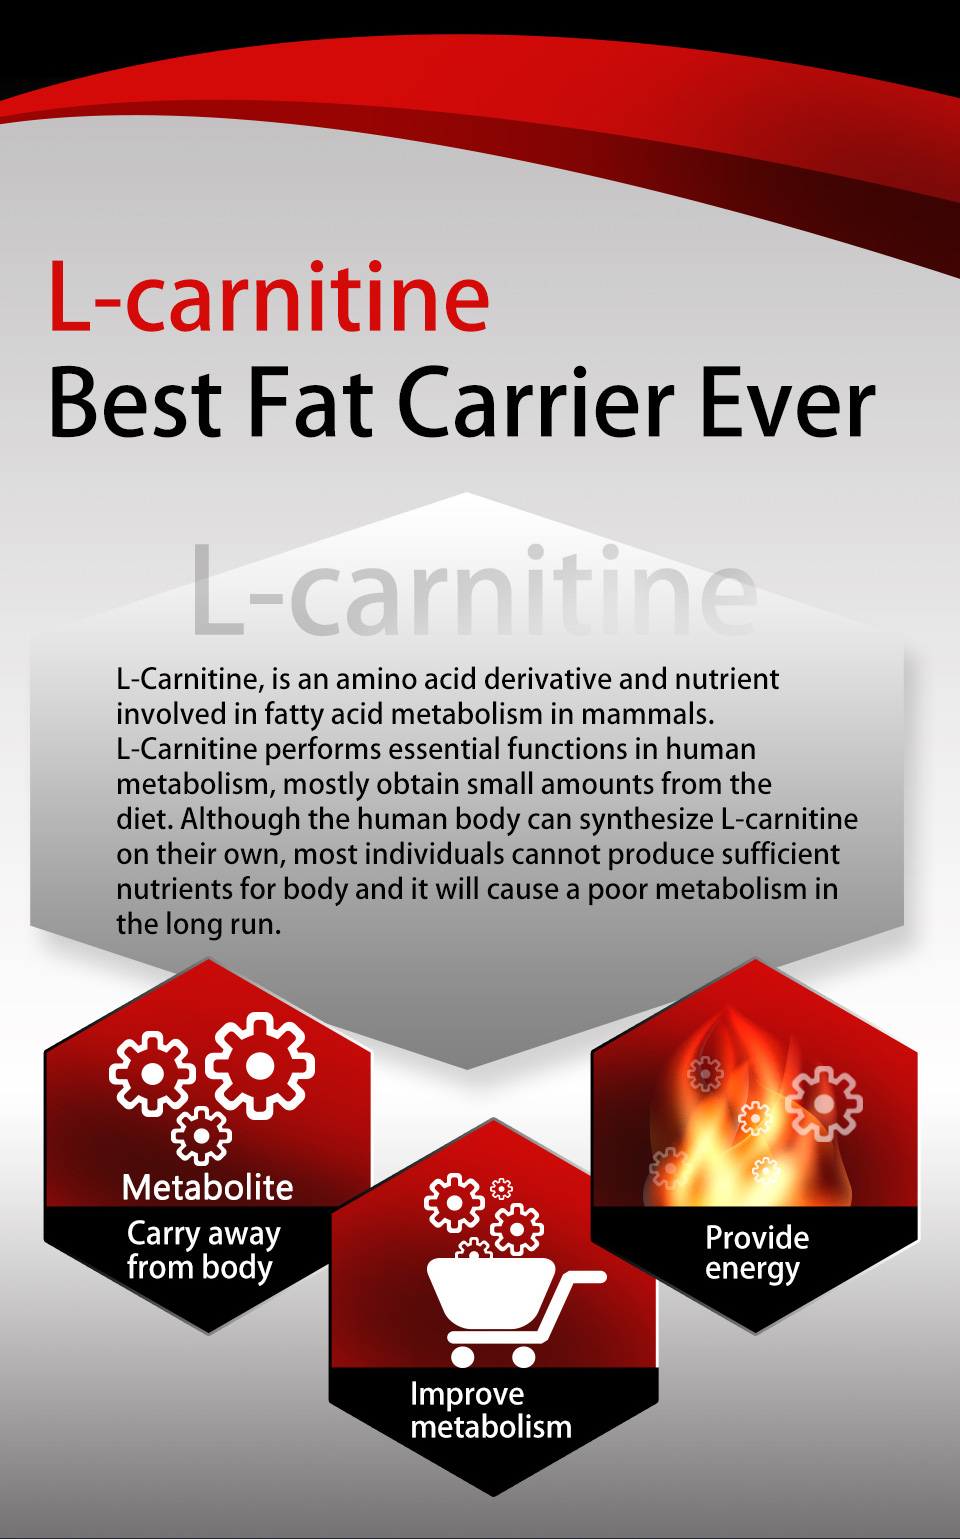 UNIQMAN L-carnitine contains vitamin B complex to enhance the immune system and heart health